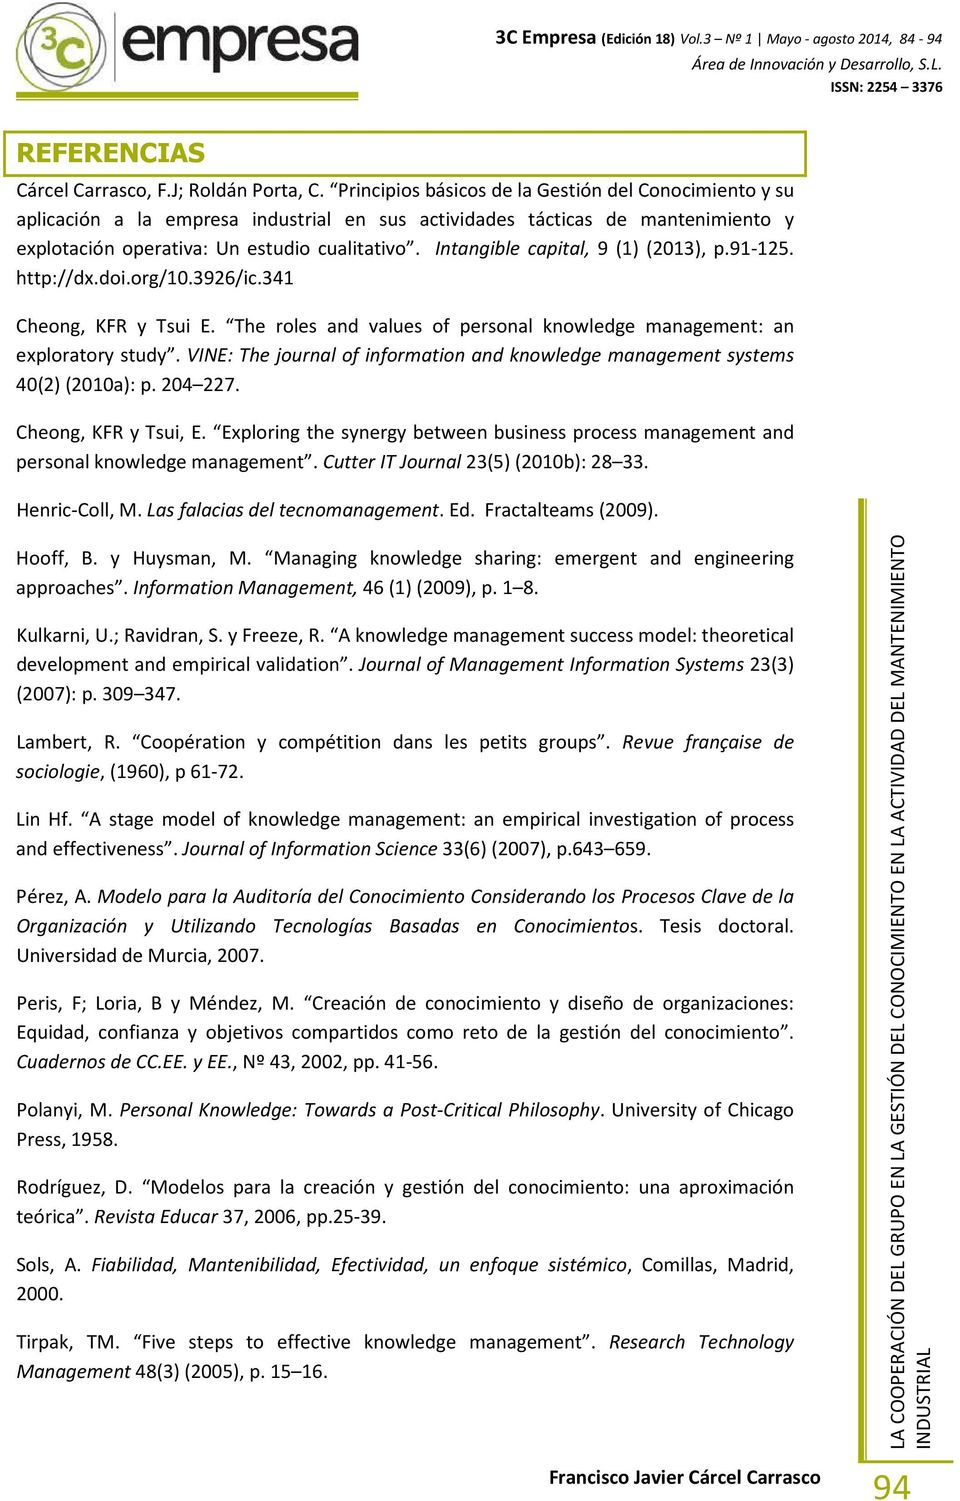 Intangible capital, 9 (1) (2013), p.91-125. http://dx.doi.org/10.3926/ic.341 Cheong, KFR y Tsui E. The roles and values of personal knowledge management: an exploratory study.